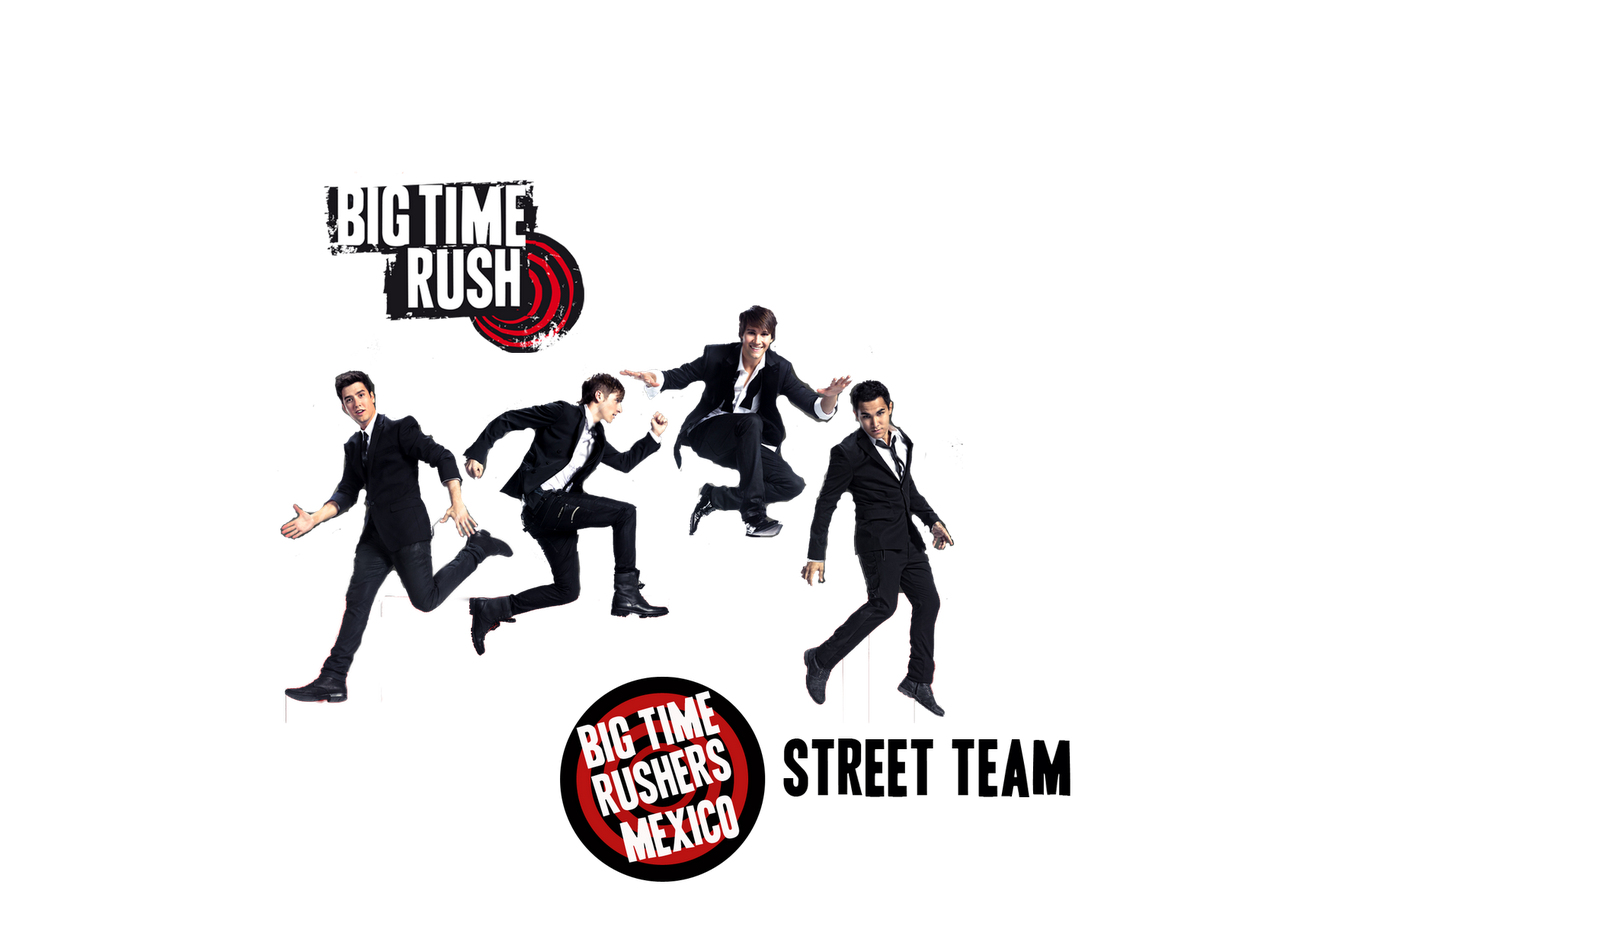 Big Time Rushers México Street Team